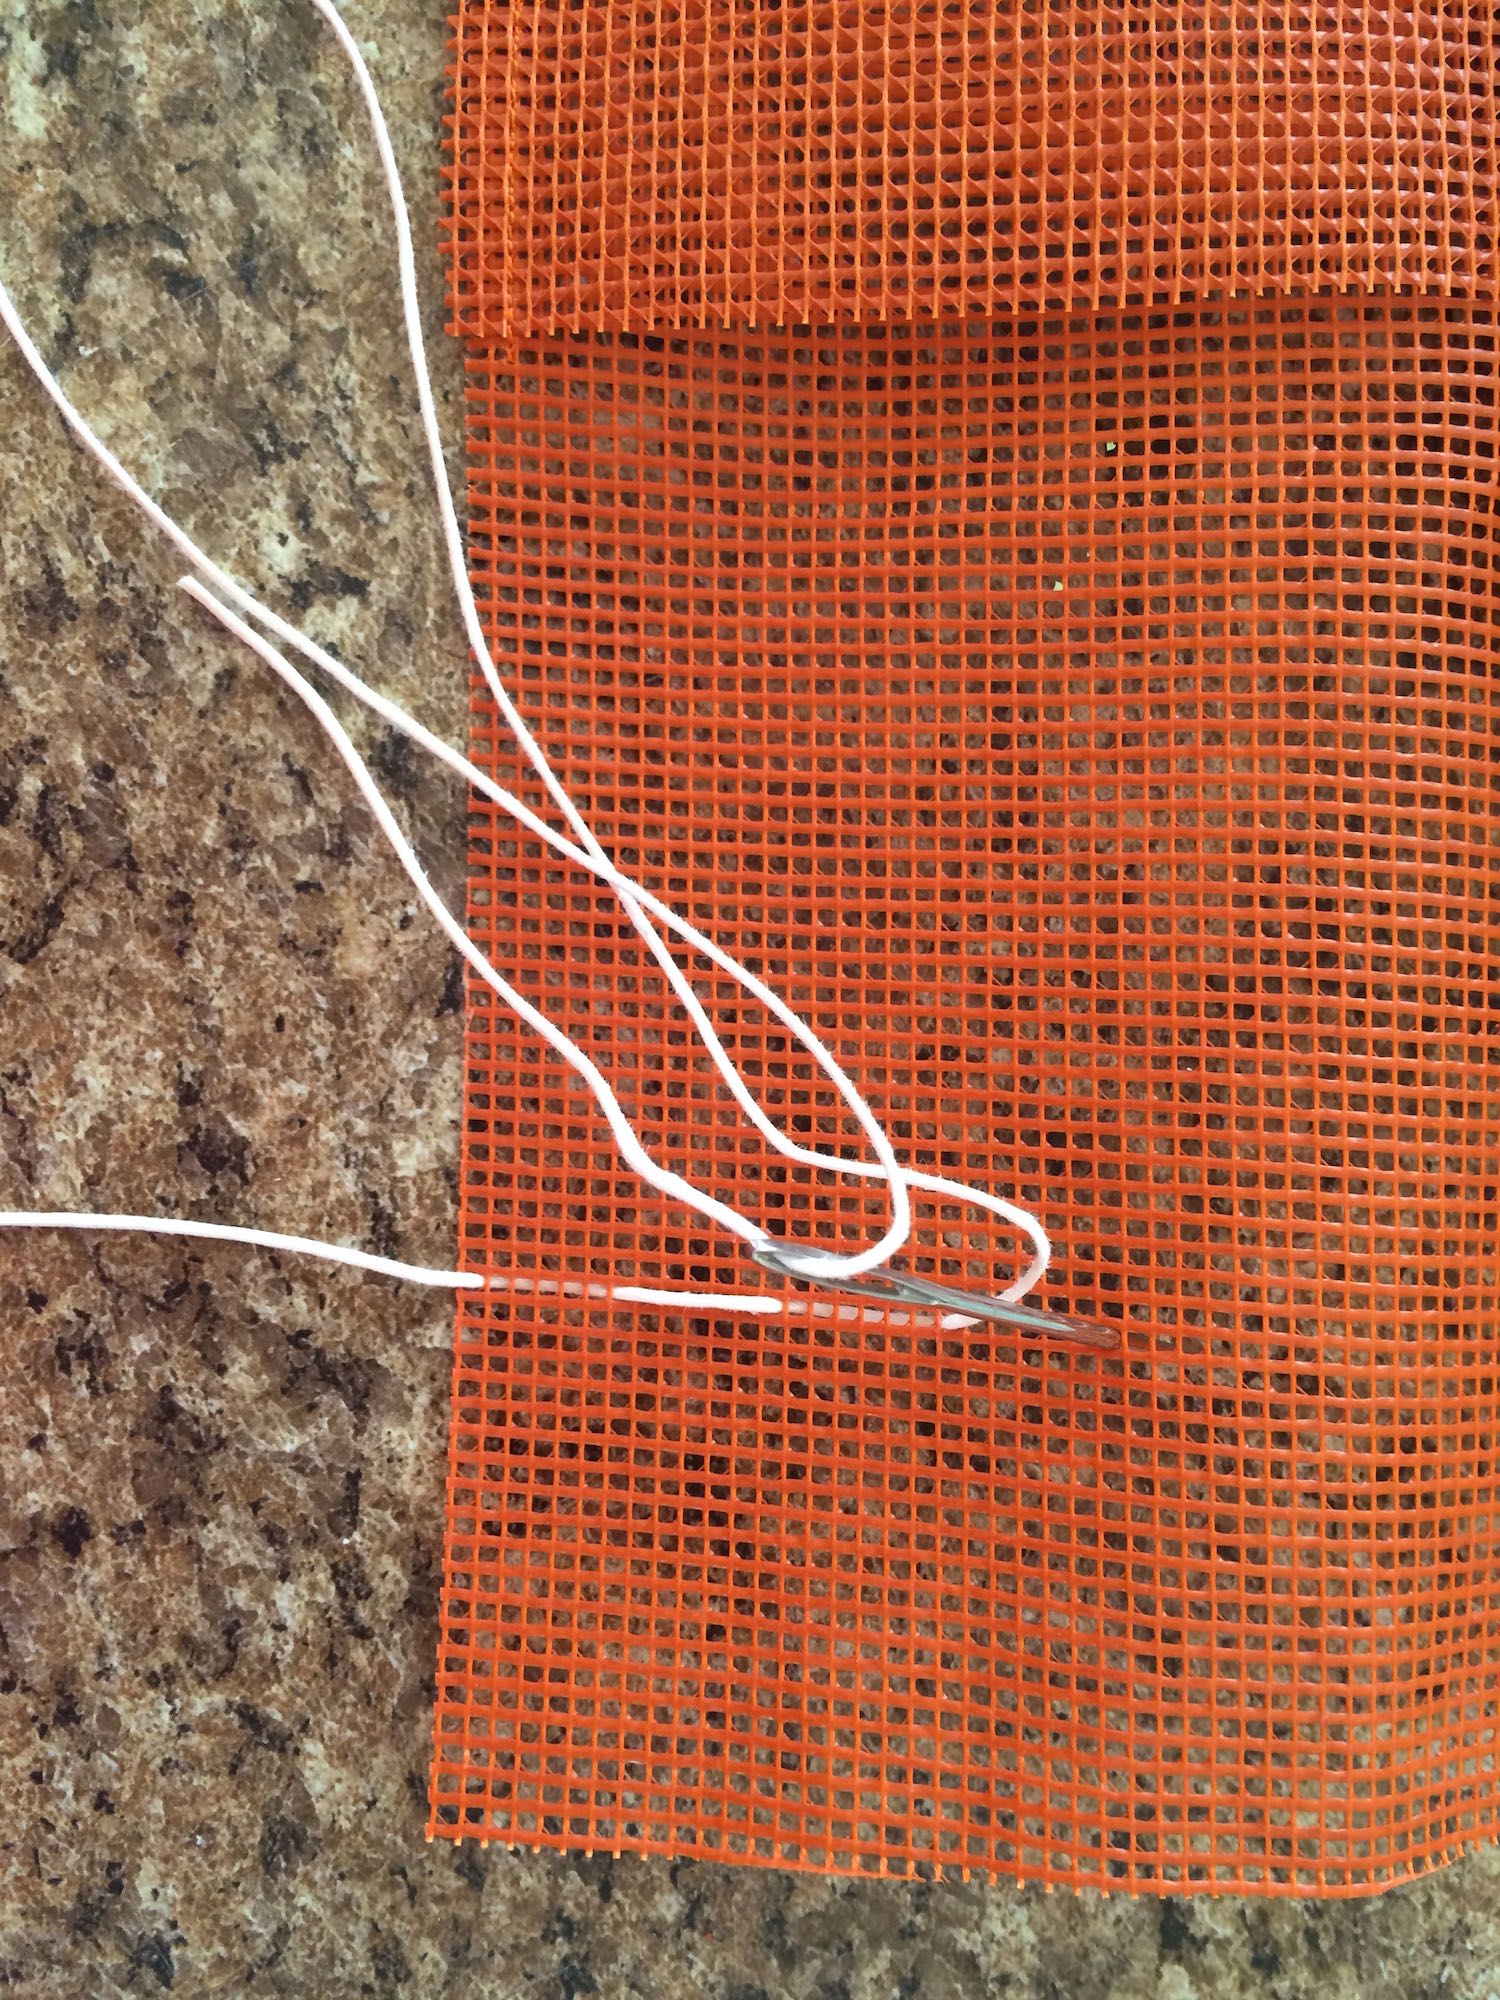 "step 5 - Measure your tallest tool and mark that many inches from the bottom with a pin.  Thread a large darning needle with 24"" of cotton cord and weave it in and out of the mesh every half inch across the length of the mesh."